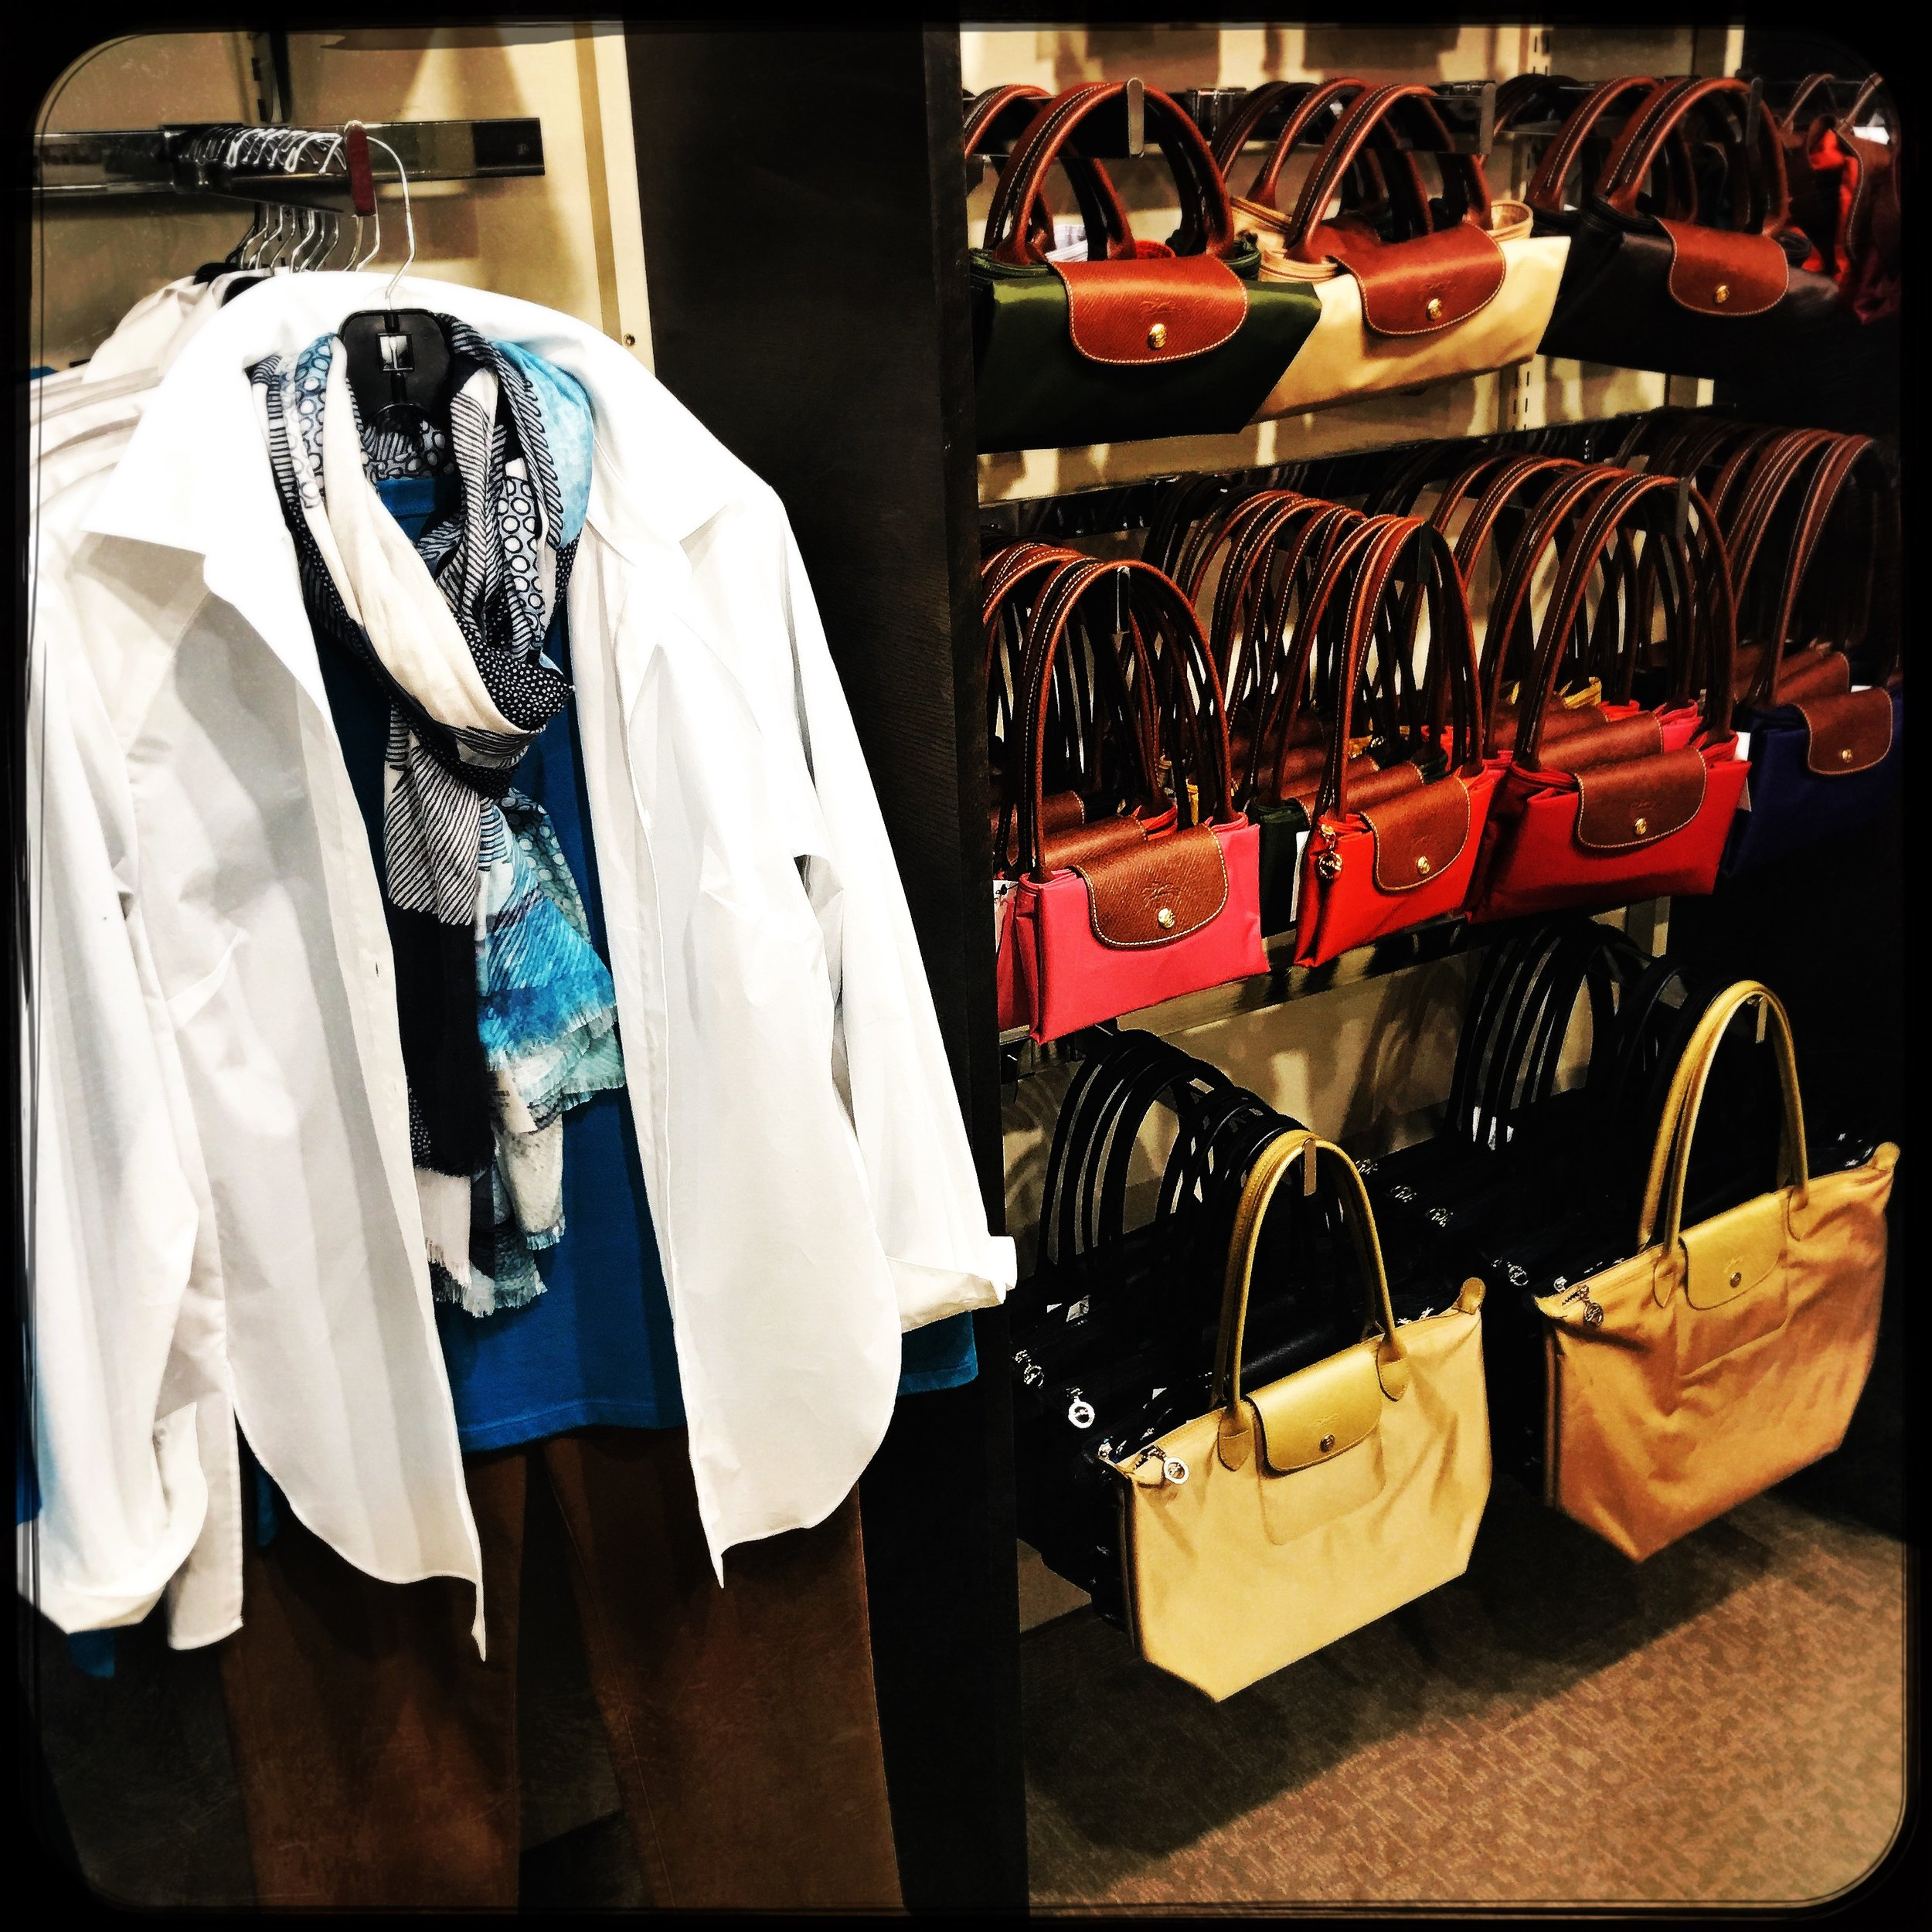 Couture by Hanny's - Luxury, style, and classic elegance is Couture by Hanny's, Rochester's finest upscale boutique. Exclusive to the downtown subway and skyway system, Couture has the largest selection of American and European brands including Lafayette 148, J'envie, and the largest collection of Longchamp of Paris. We offer specialized services such as one-­on-­one wardrobing, fit recommendations, and special orders.Shop during business hours or by private appointment.